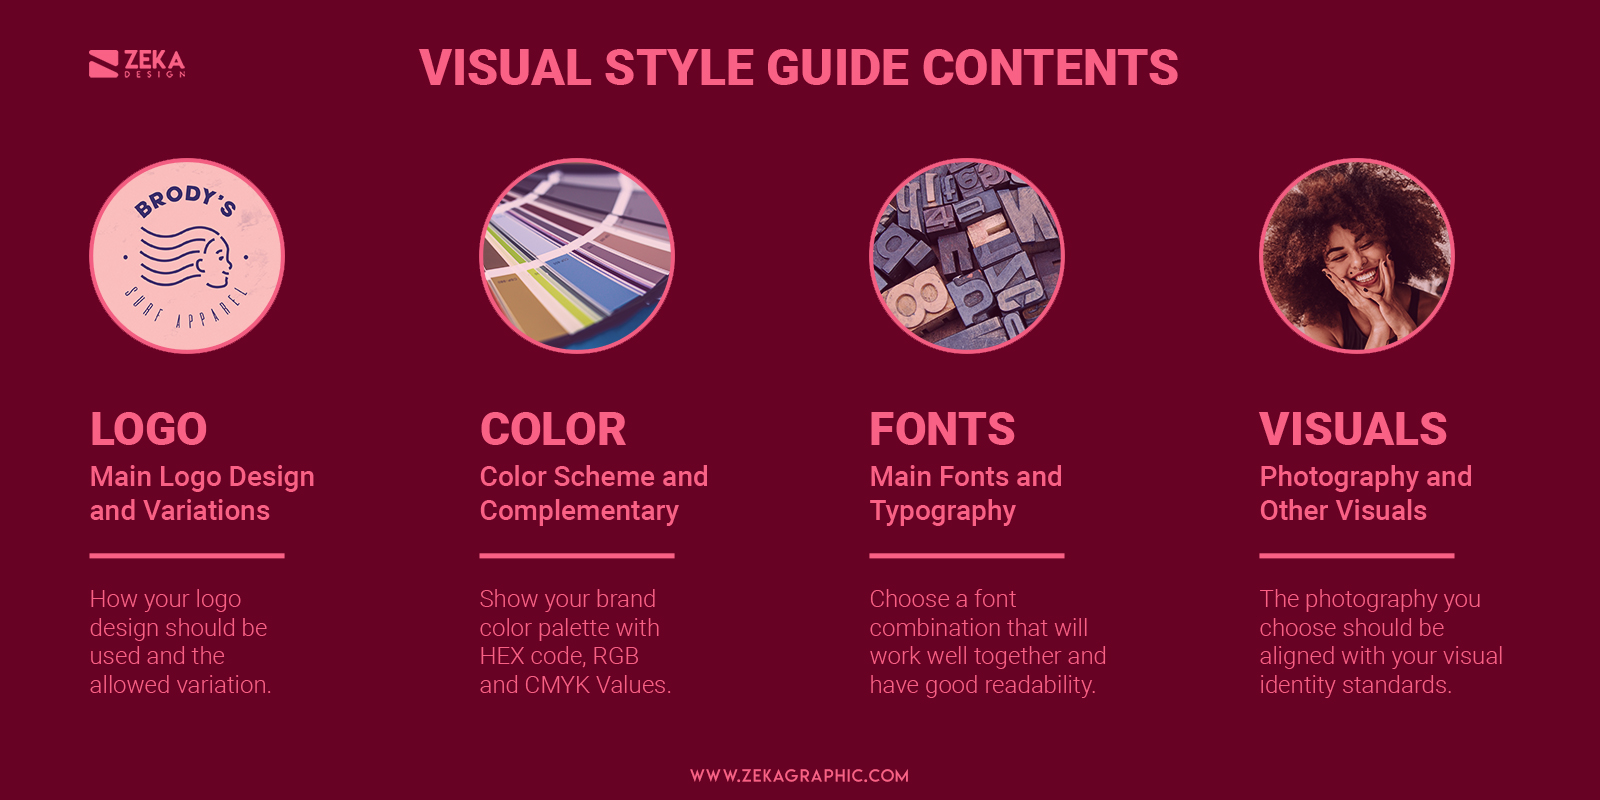 Visual Style Guide Contents